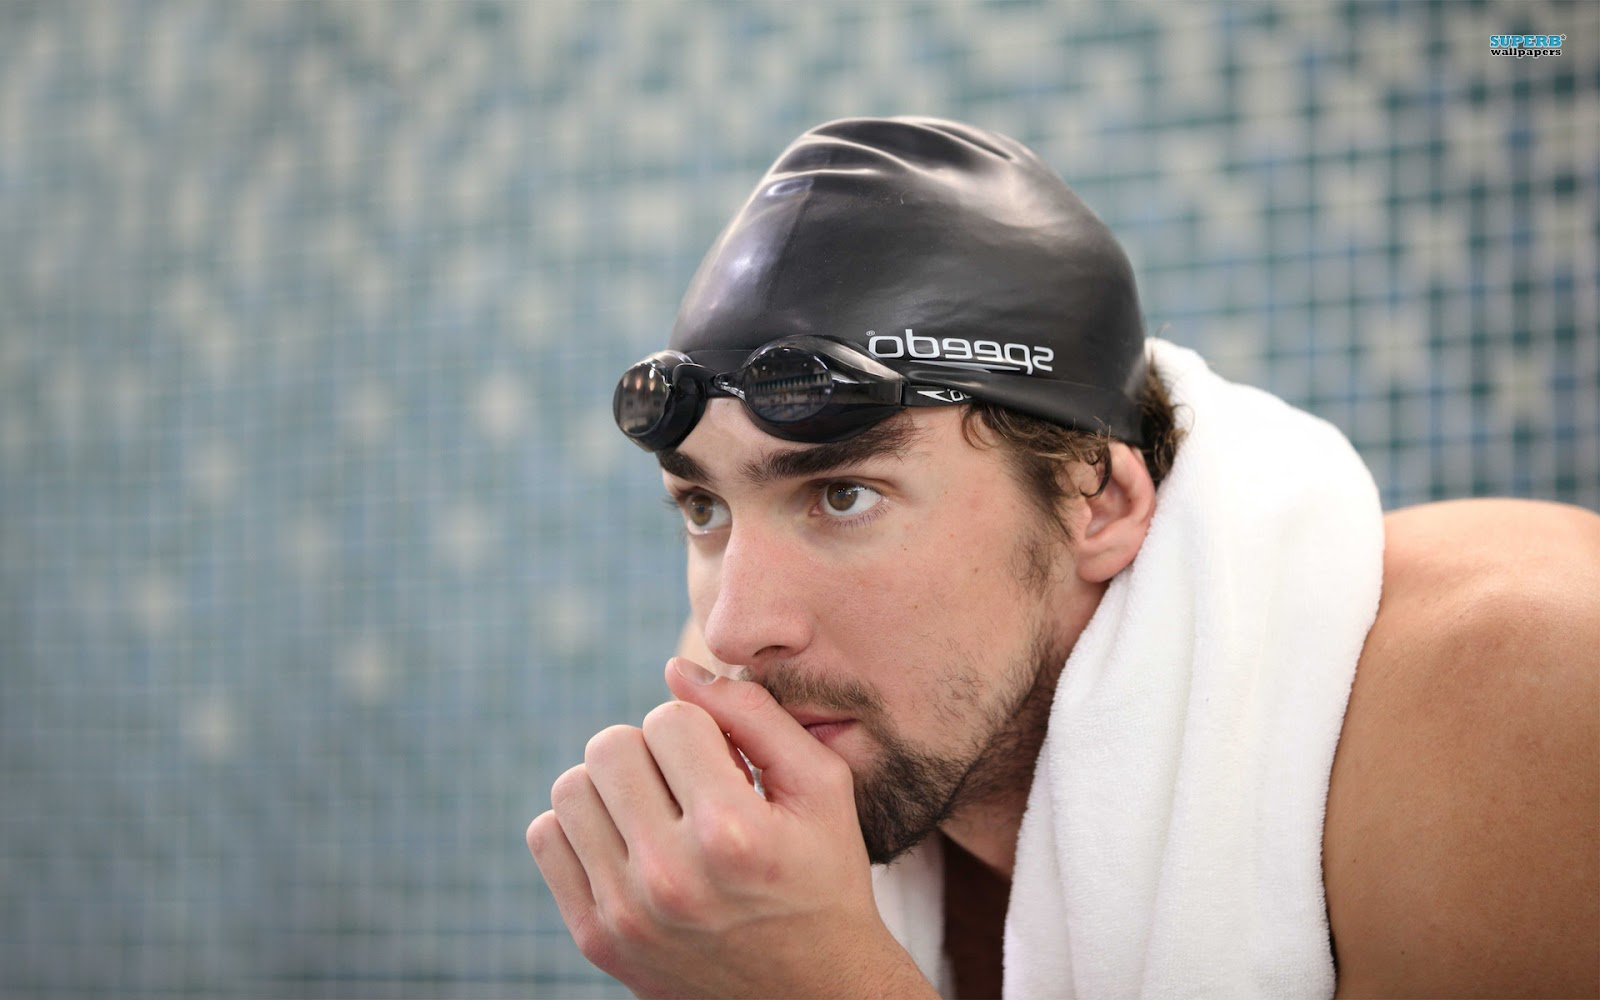 MICHAEL PHELPS MOST DECORATED OLYMPIAN 22 MEDALS